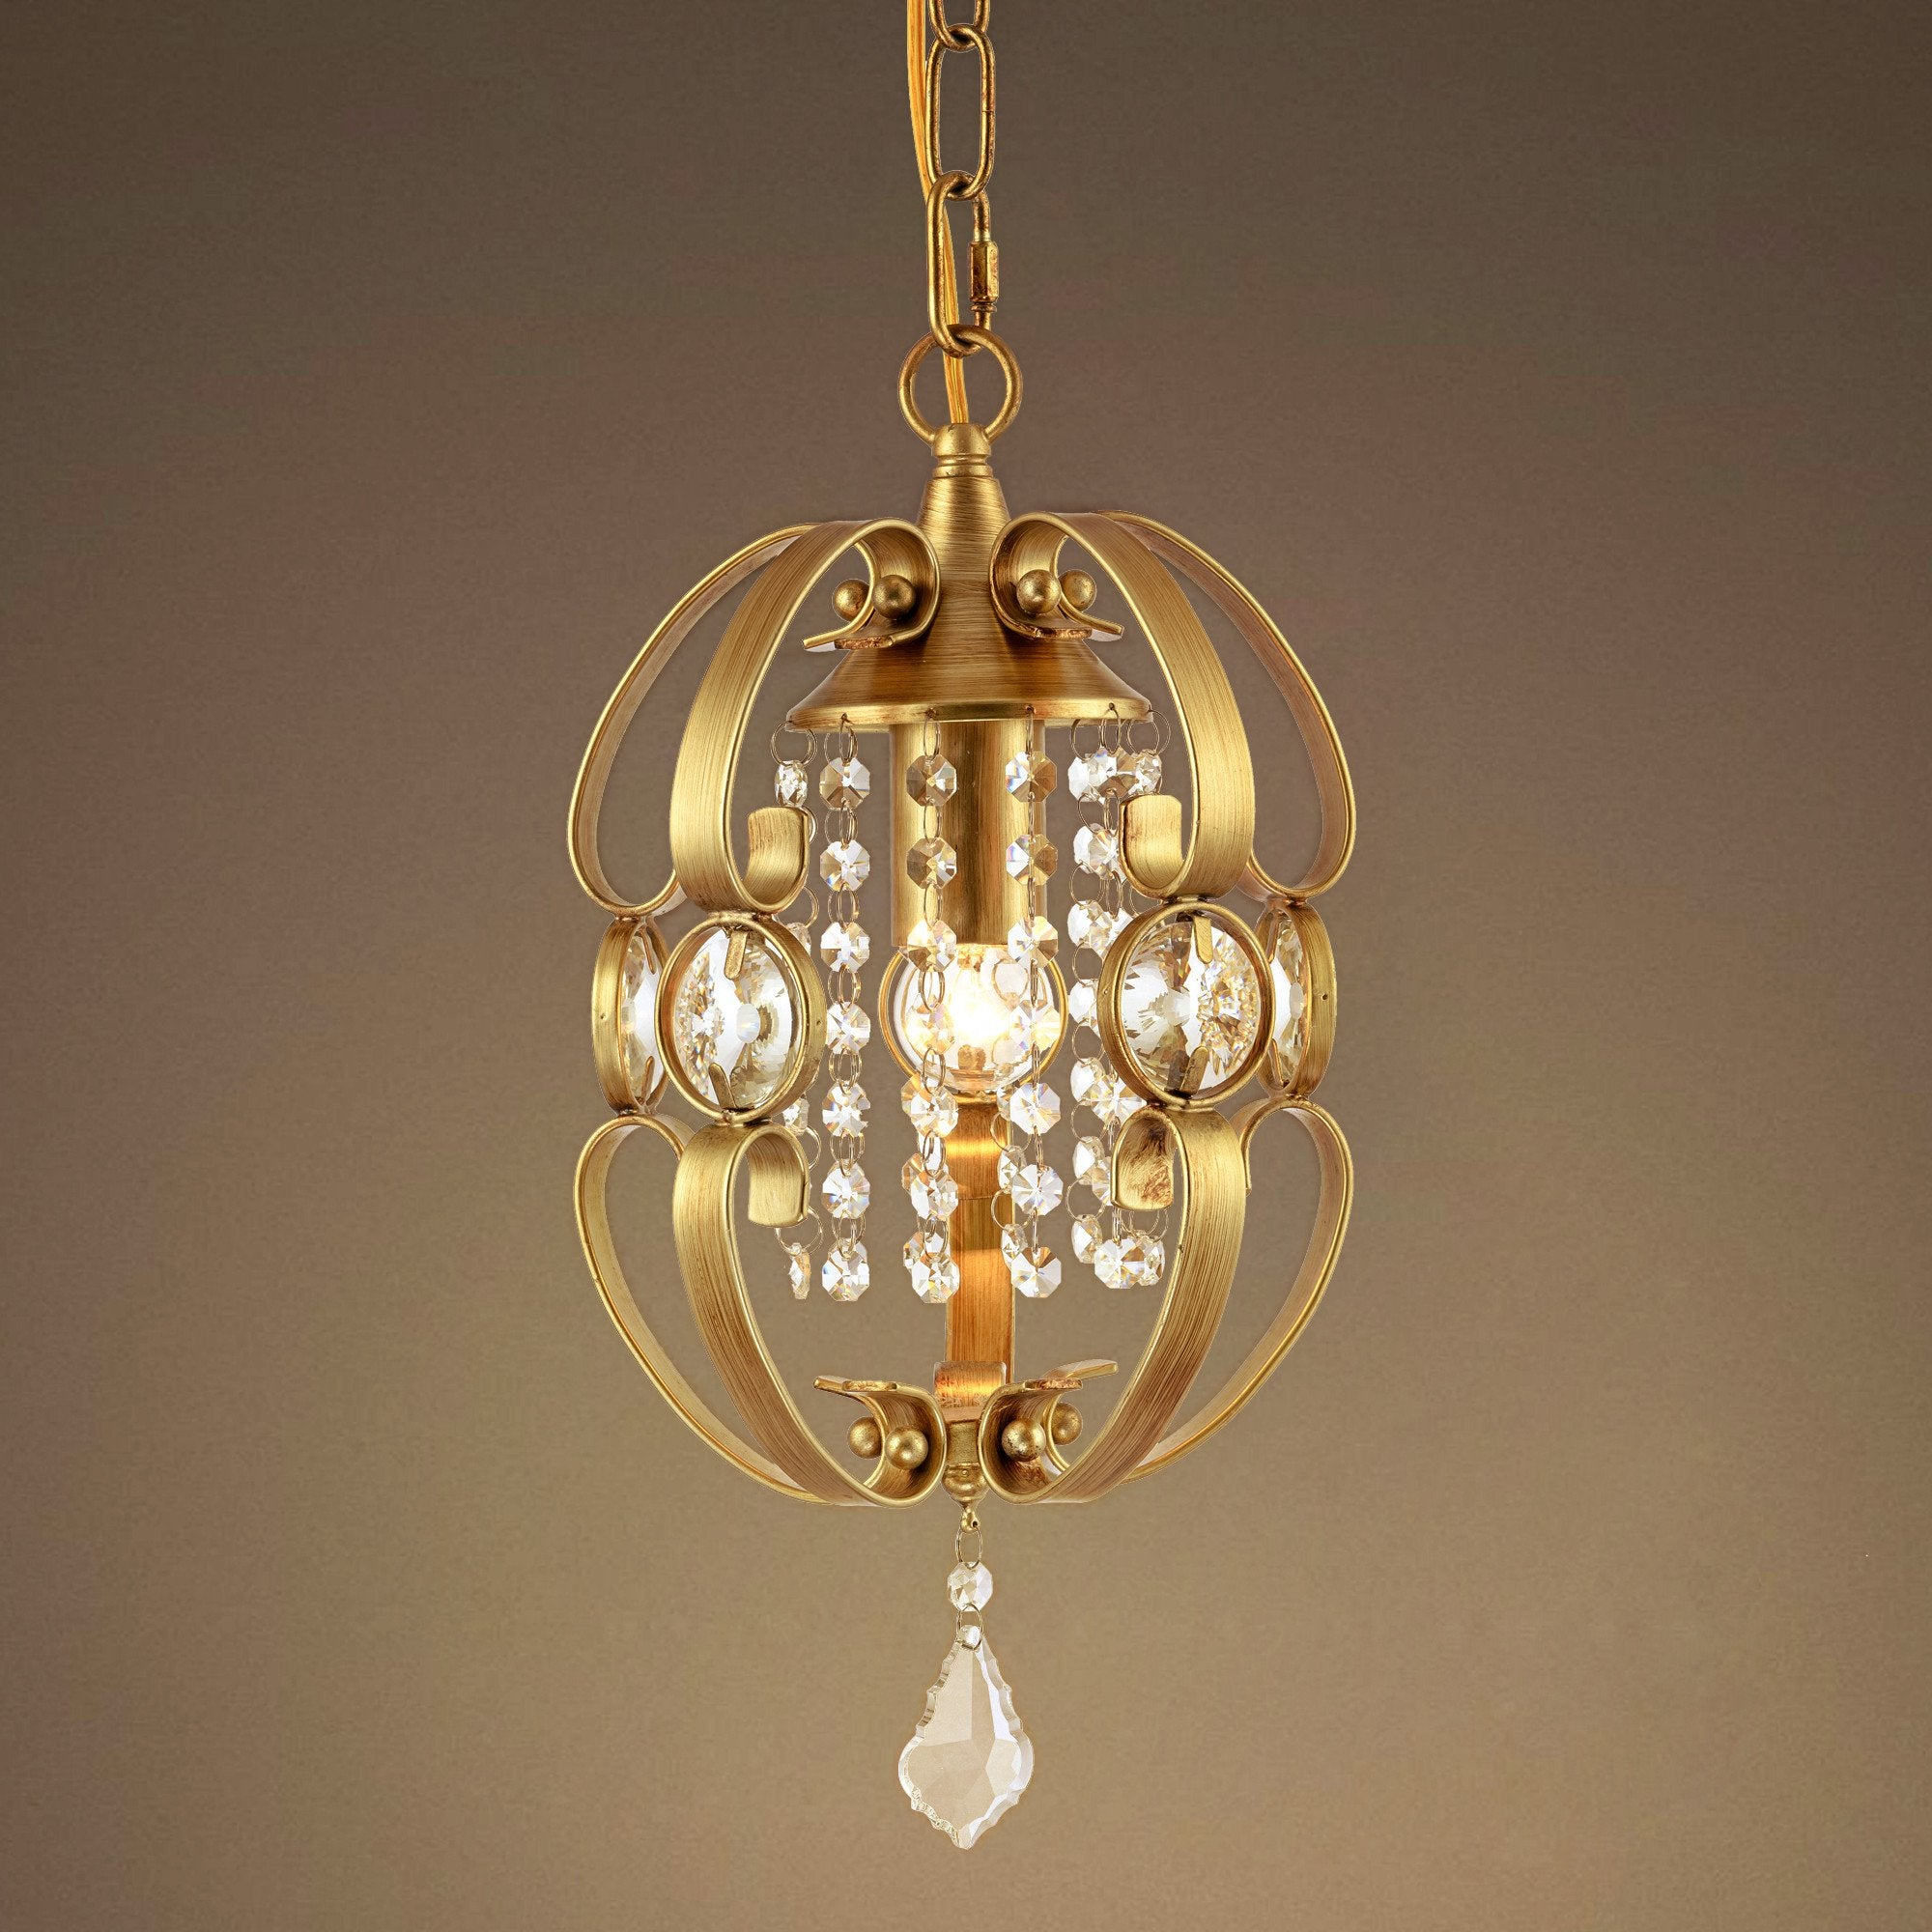 GOLDEN Globe 1 Light Candle Crystal Pendant Light